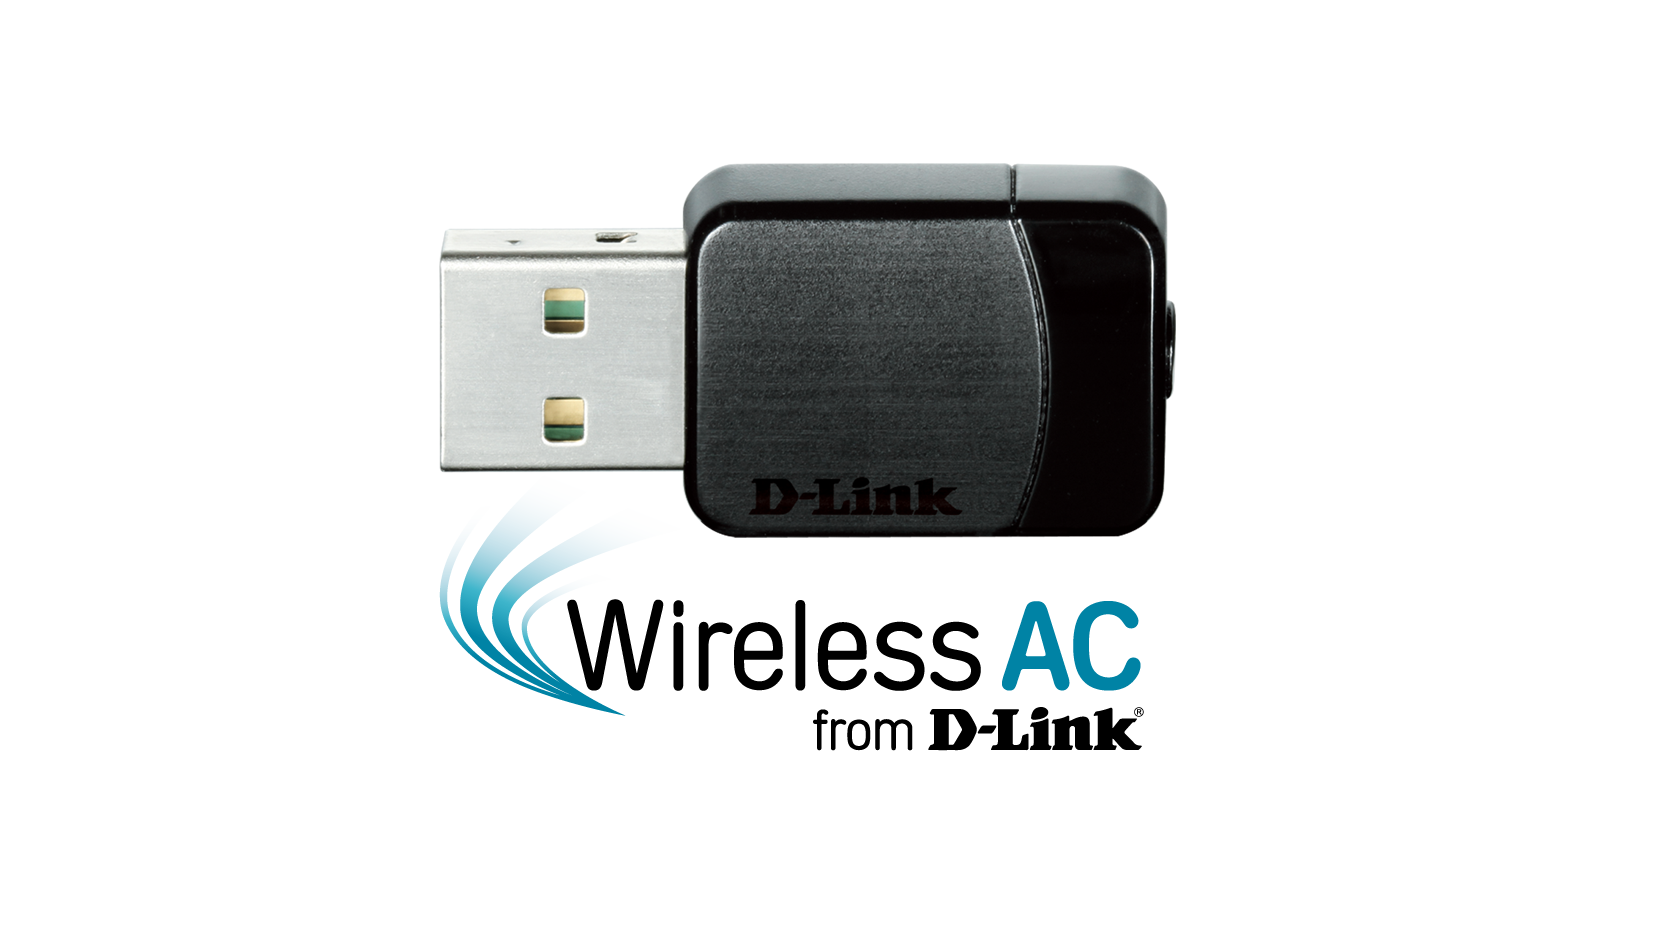 AC600 DUAL BAND WIRELESS USB ADAPTER DOWNLOAD DRIVER